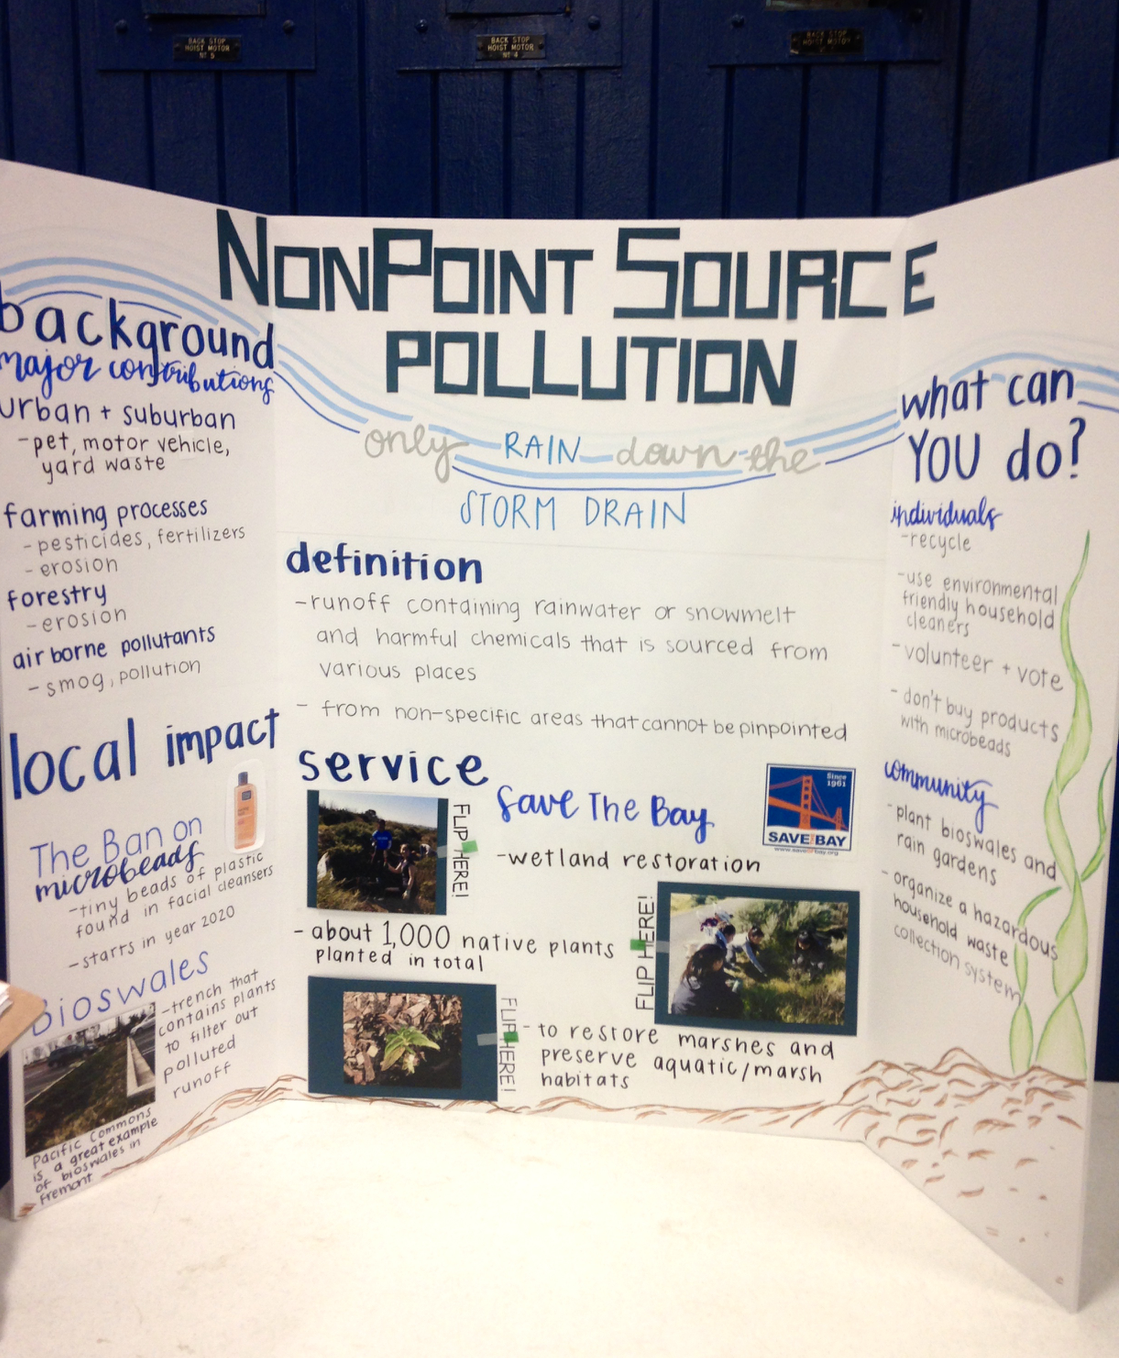 NonPoint Source Pollution - Claire H, Grace Y, Anusri C, Priyanka GProblem: The runoff that washes into the bay contains pollutants, which harms the aquatic ecosystem.Service: They planted bioswales that filter out polluted runoff.